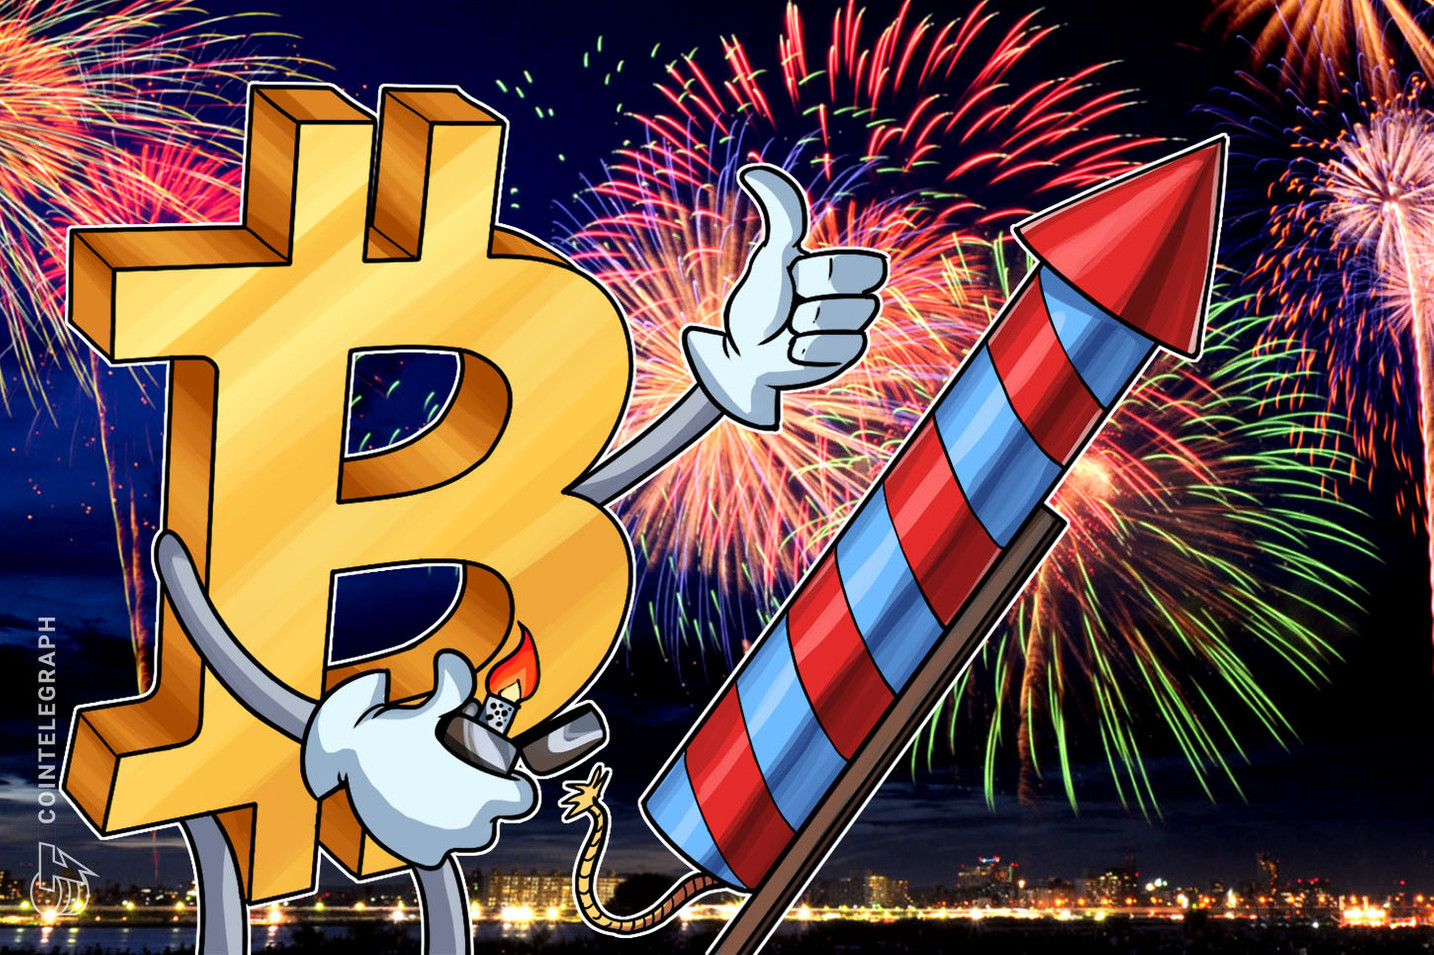 BTC Hits $4,800 for the First Time in 2019, Top Crypto Markets See Double Digit Growth